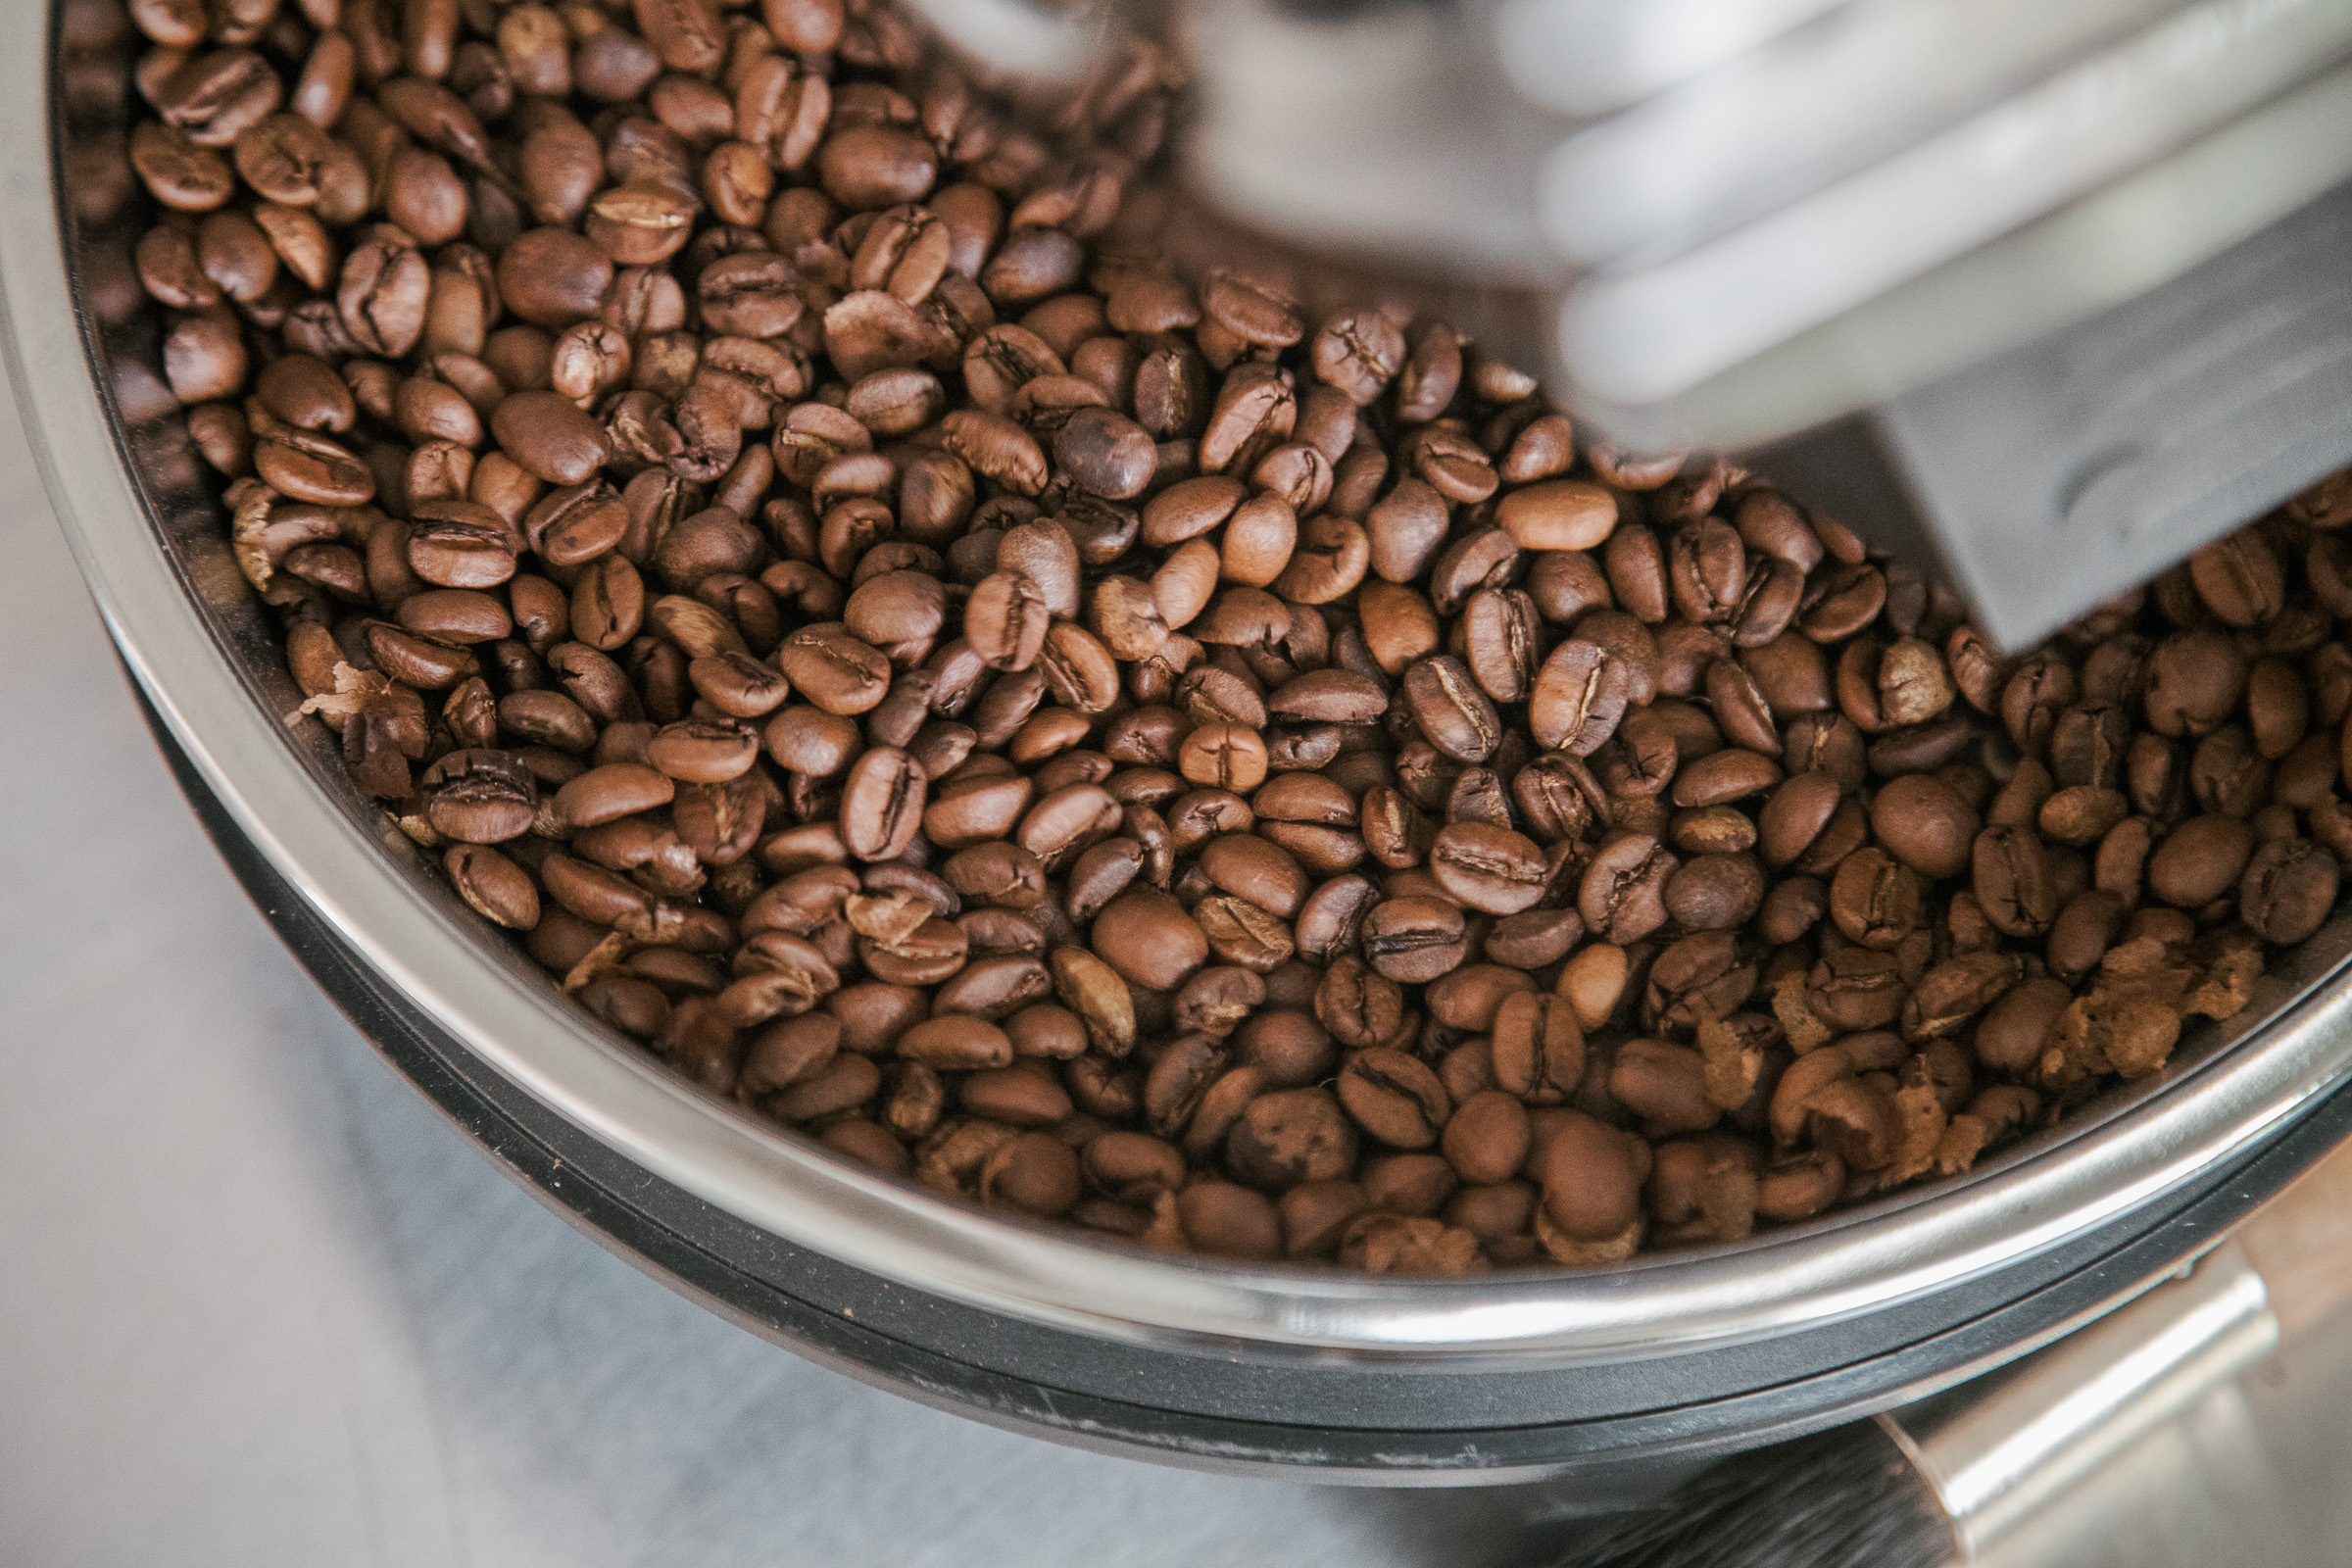 A closeup of coffee beans in the the Hottop Coffee Roaster's cooling chamber after roasting.